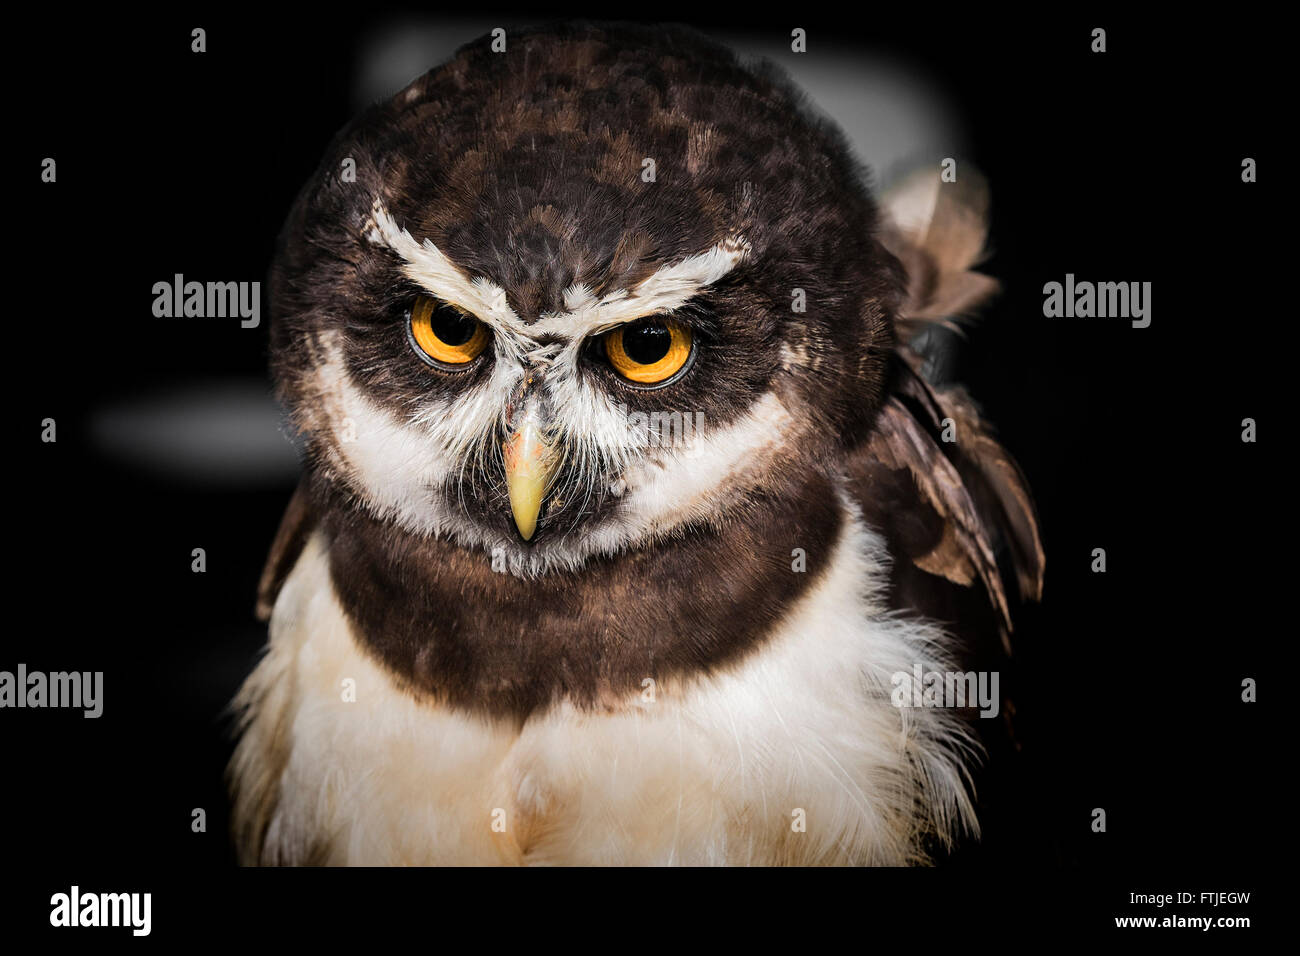 A Spectacled Owl displayed by the Screech Owl Sanctuary in Cornwall. - Stock Image